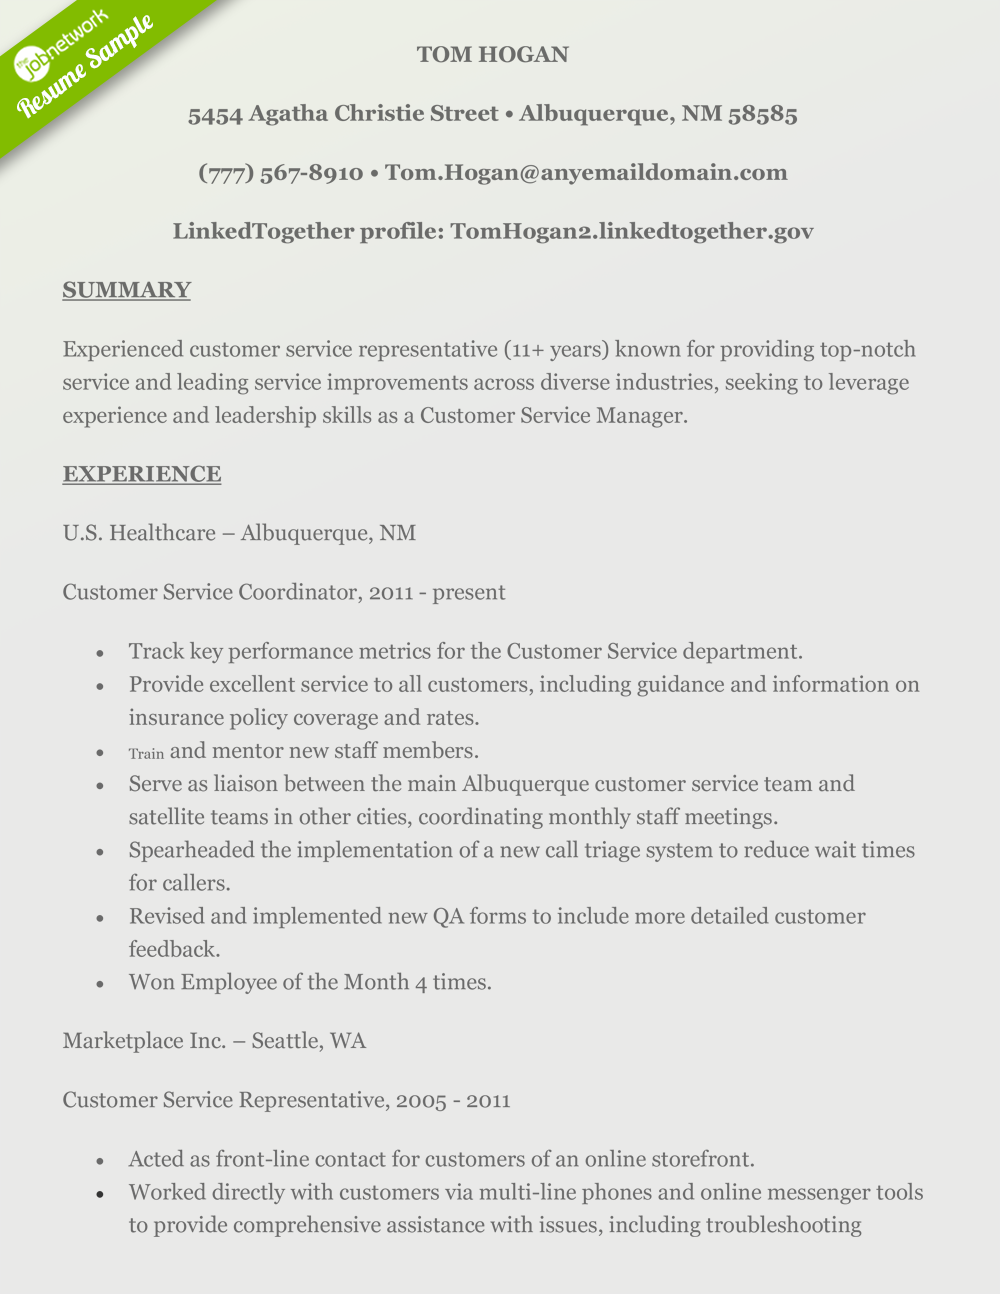 tom hogan resume - My Perfect Resume Customer Service